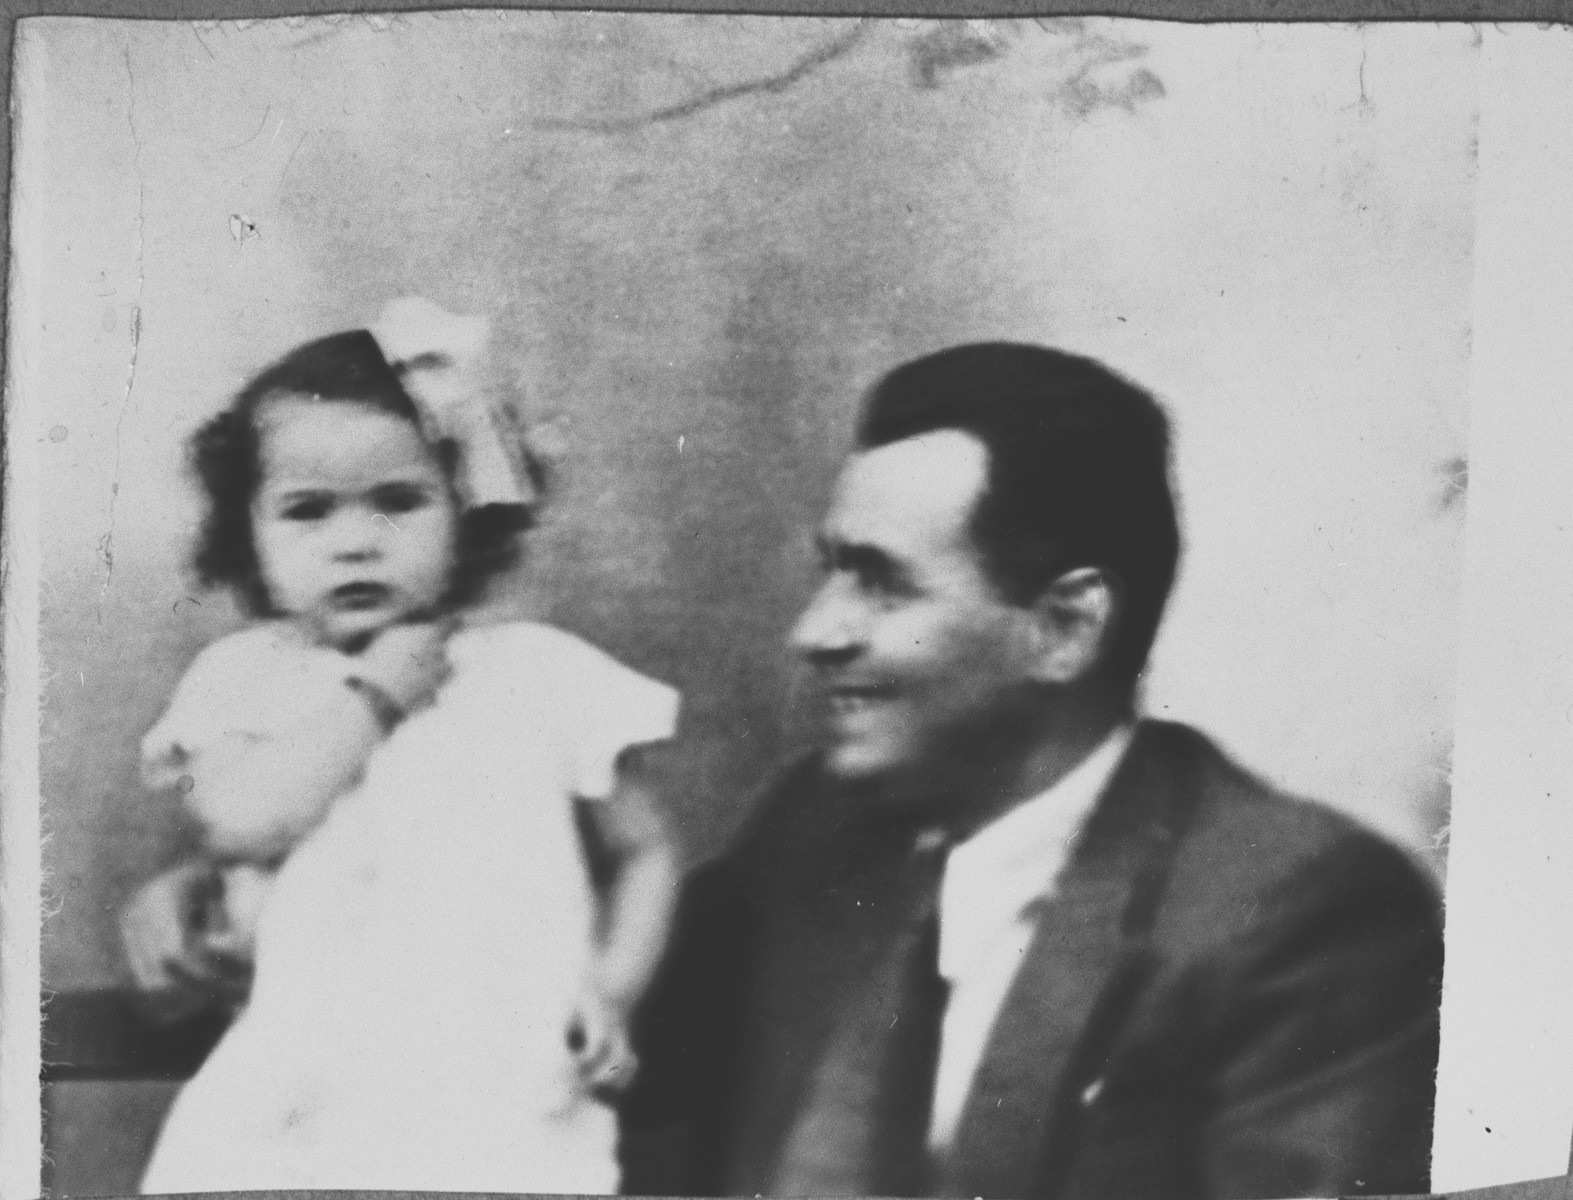 Portrait of Mois Kamchi, son of Solomon Kamchi, with a child.  Mois was an auto dealer.  He lived at Karagoryeva 107 in Bitola.